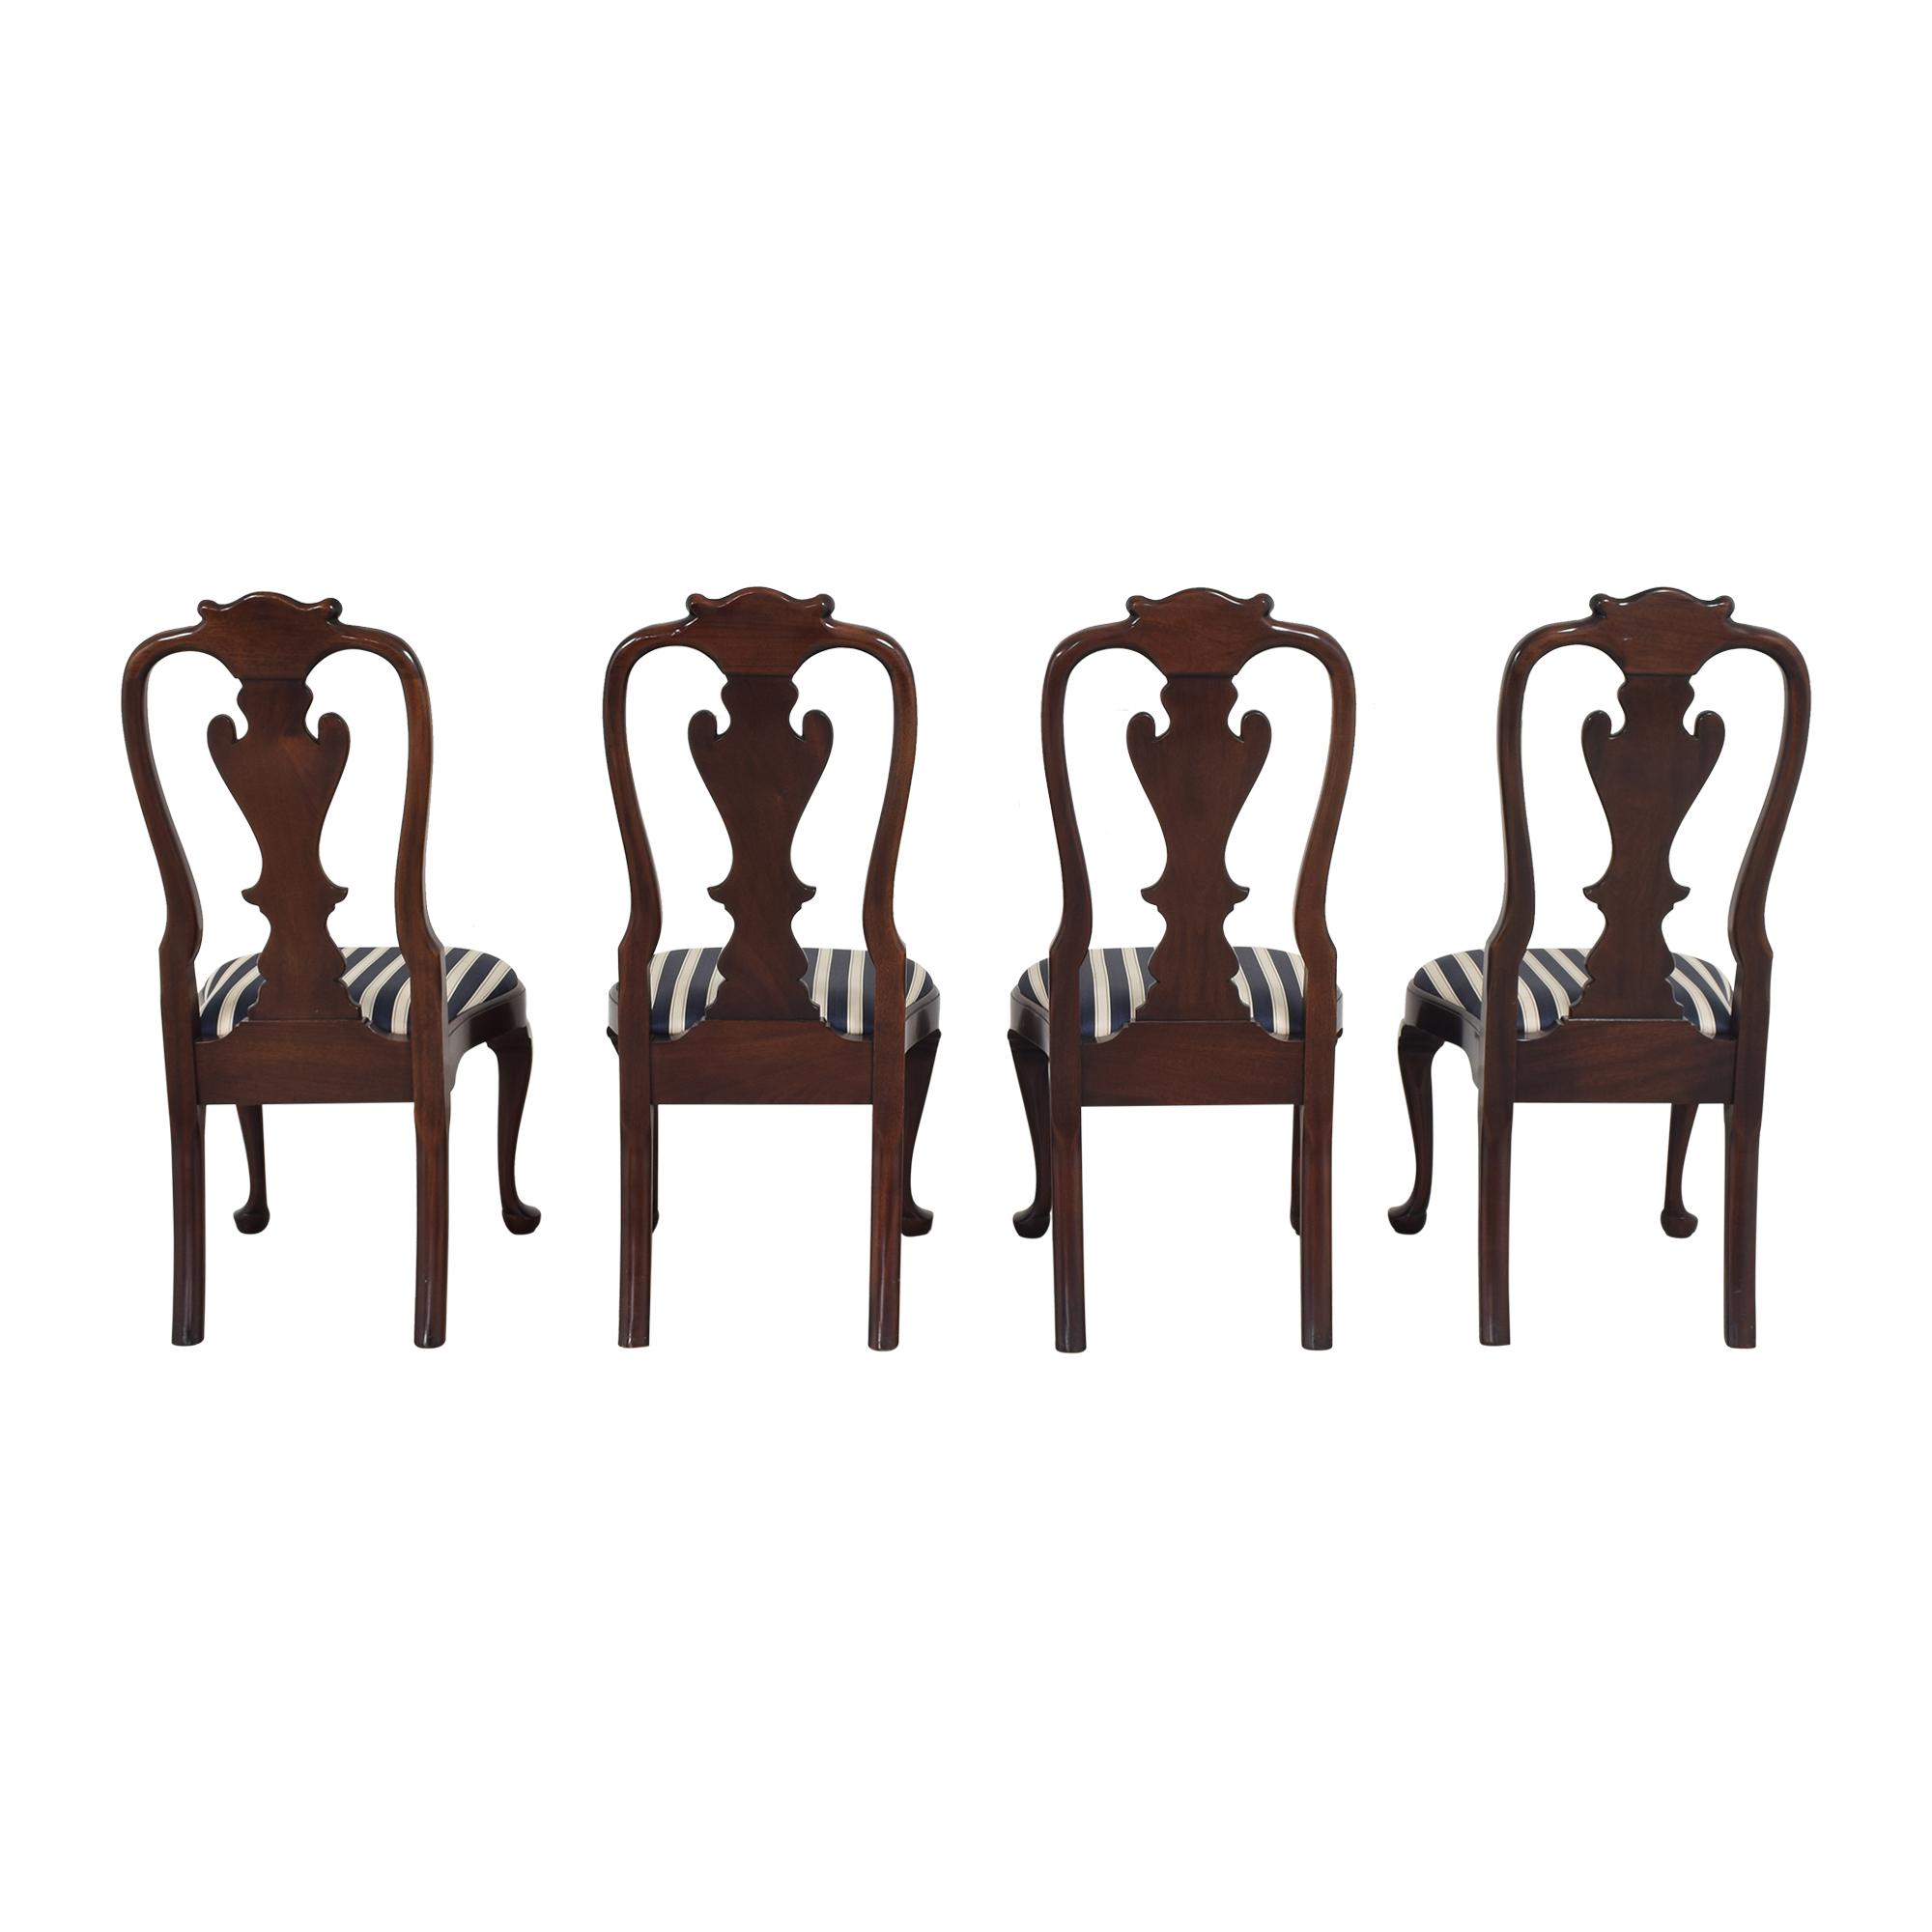 Stickley Furniture Stickley Furniture Queen Anne-Style Dining Chairs Dining Chairs